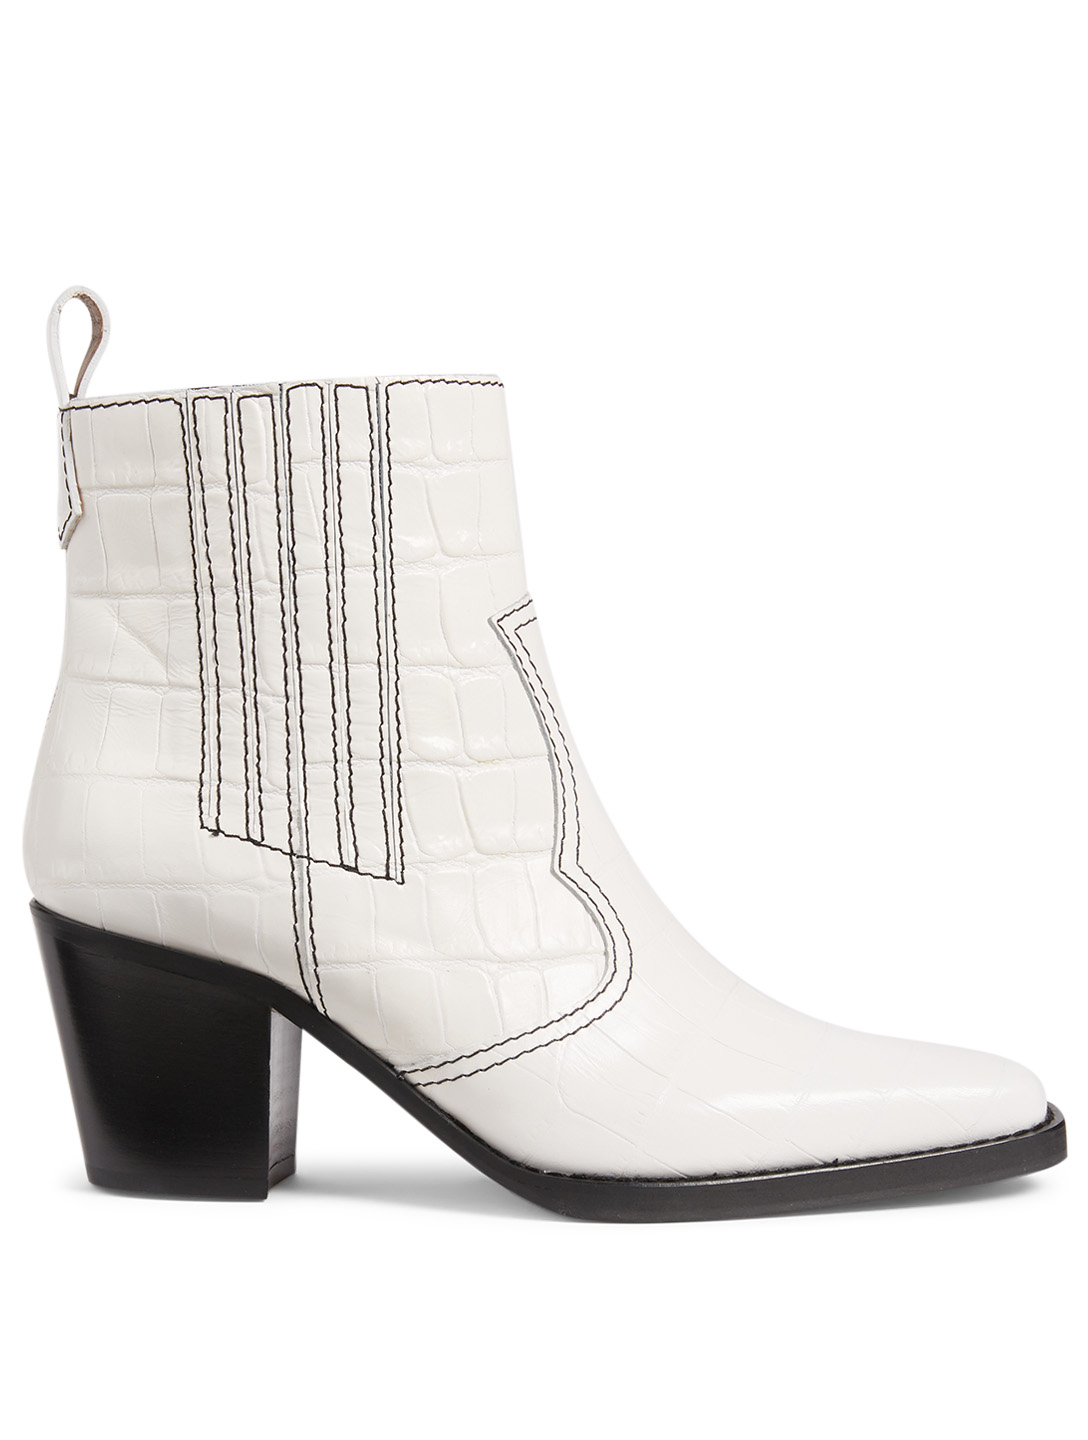 7662e39cef6 GANNI Western Croc-Embossed Leather Ankle Boots Women's White ...